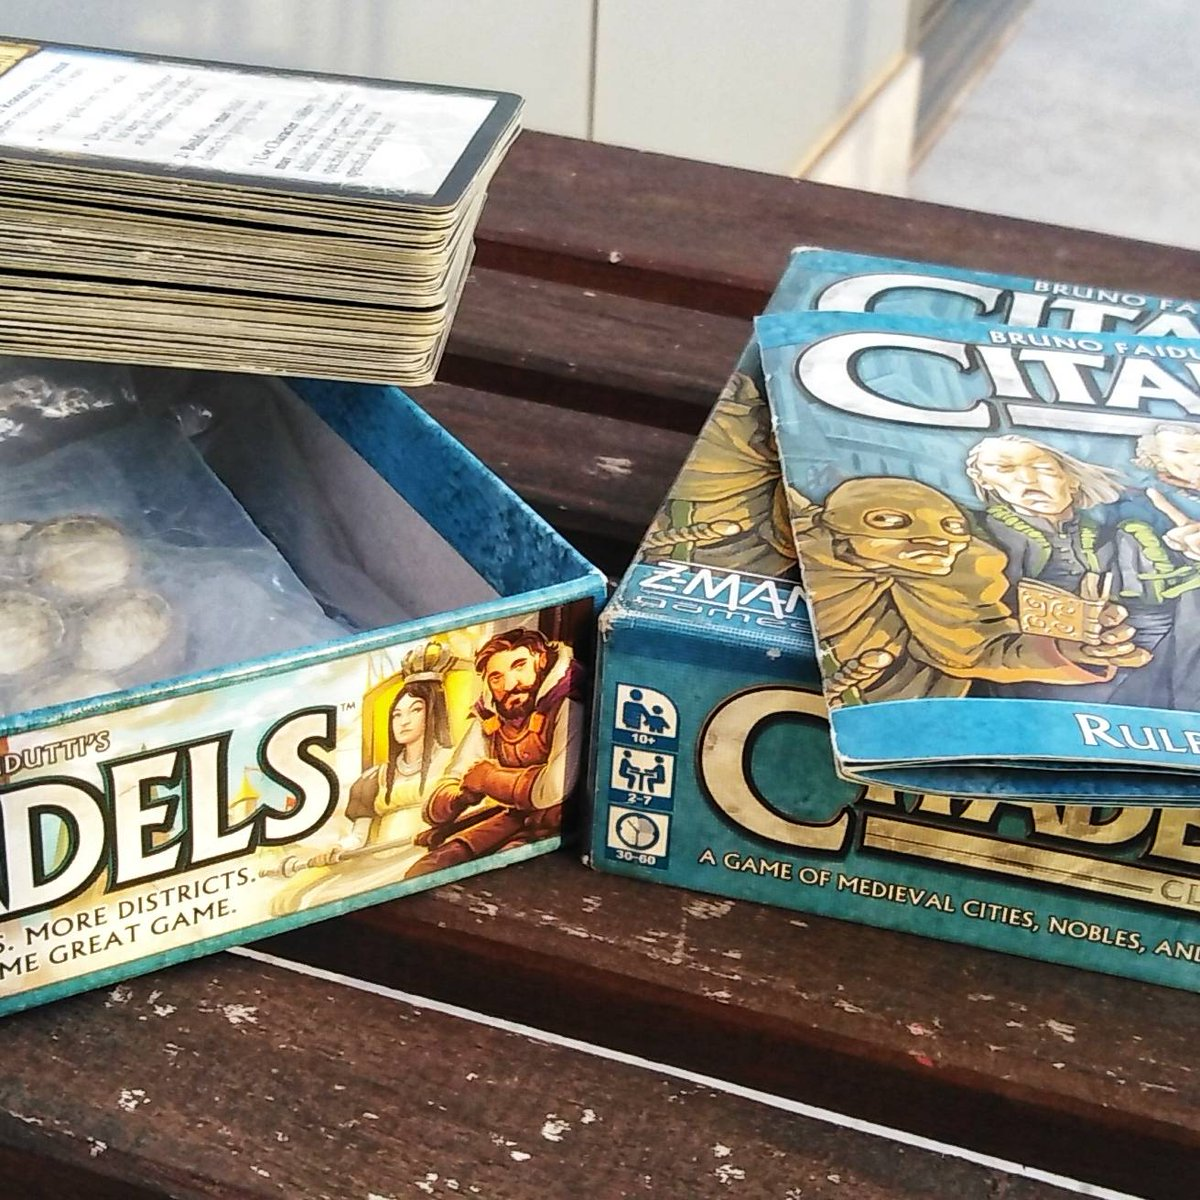 Had fun playing Citadels with the fam. Even better was introducing it to a friend's family (pre-Covid of course) and they haven't stopped playing it since!pic.twitter.com/9fygxmj2d8